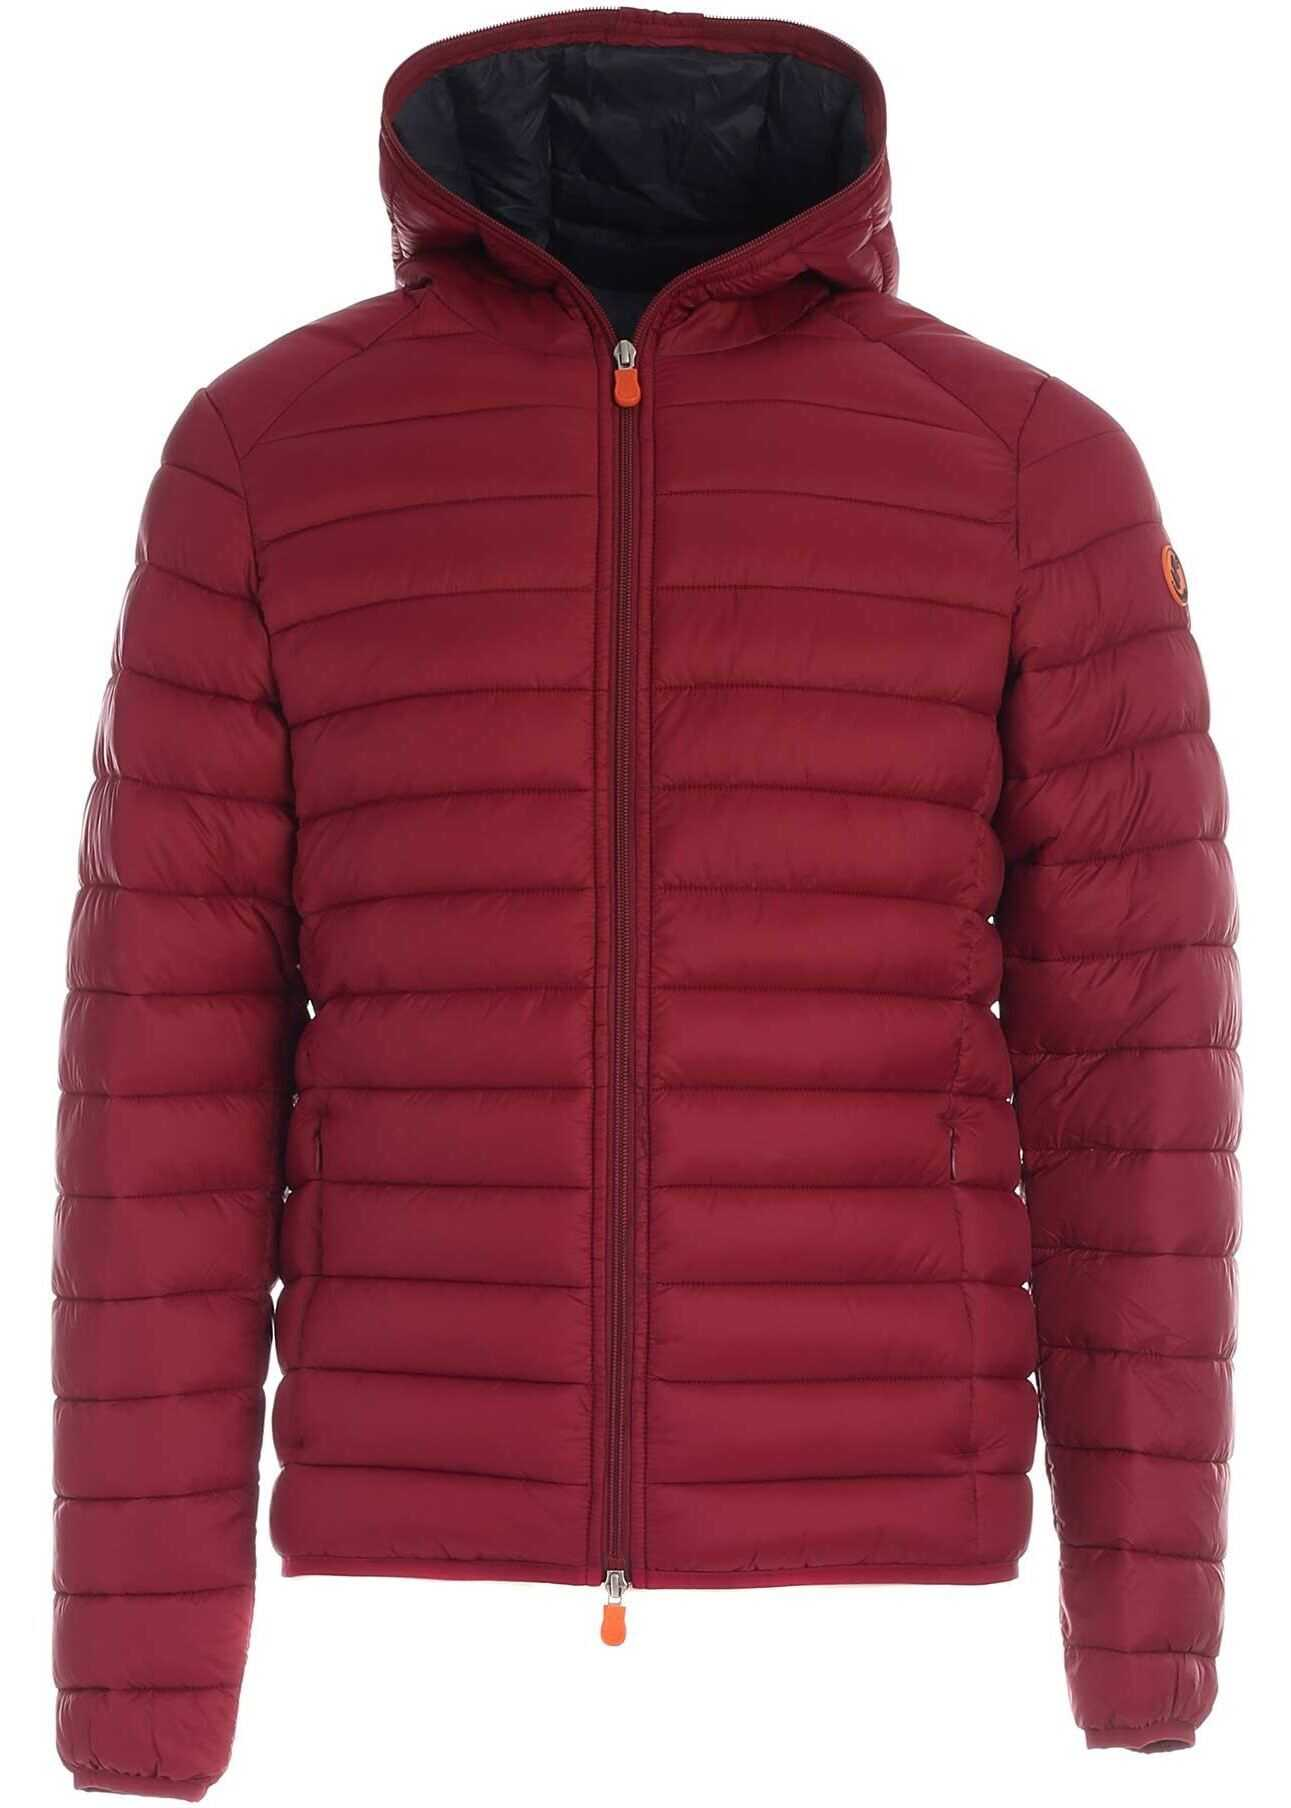 Save the Duck Quilted Puffer Jacket In Burgundy Red imagine